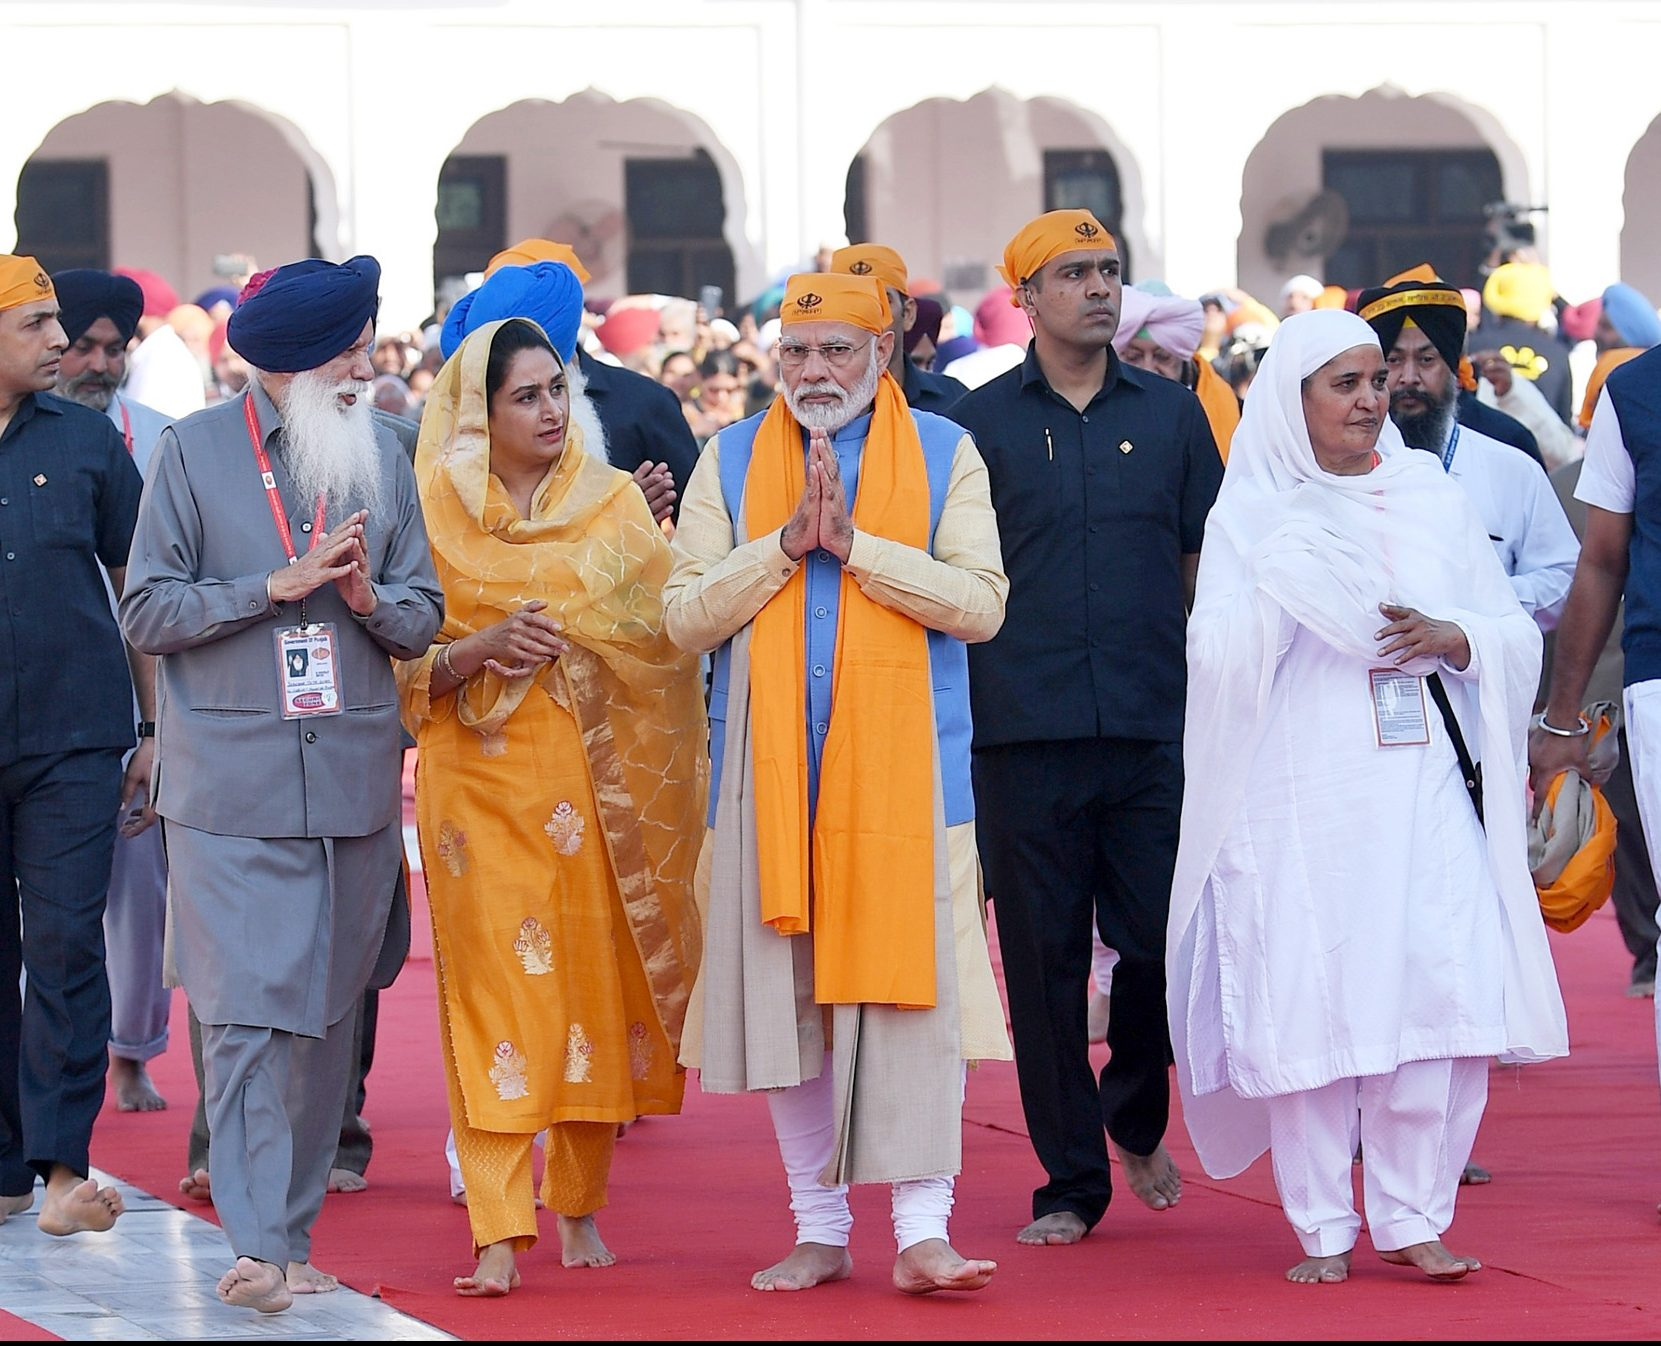 The Prime Minister, Shri Narendra Modi at the Gurudwara Ber Sahib, in Sultanpur Lodhi, Punjab on November 09, 2019.